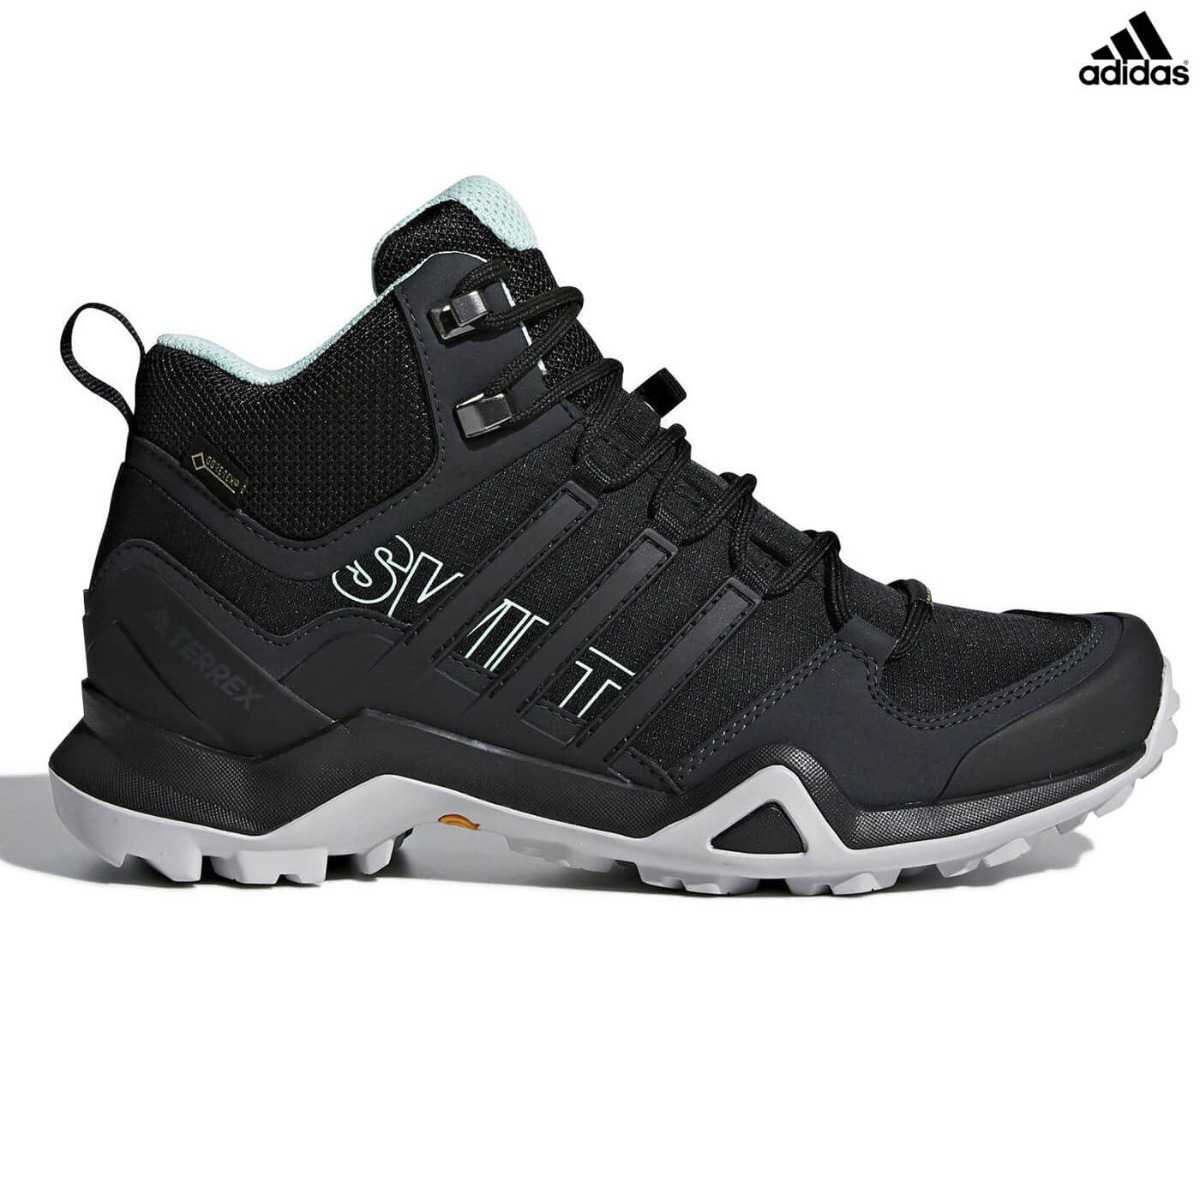 My Junior Reifen Adidas Terrex Swift R2 Mid Gtx Women 39;s Shoes Hiking